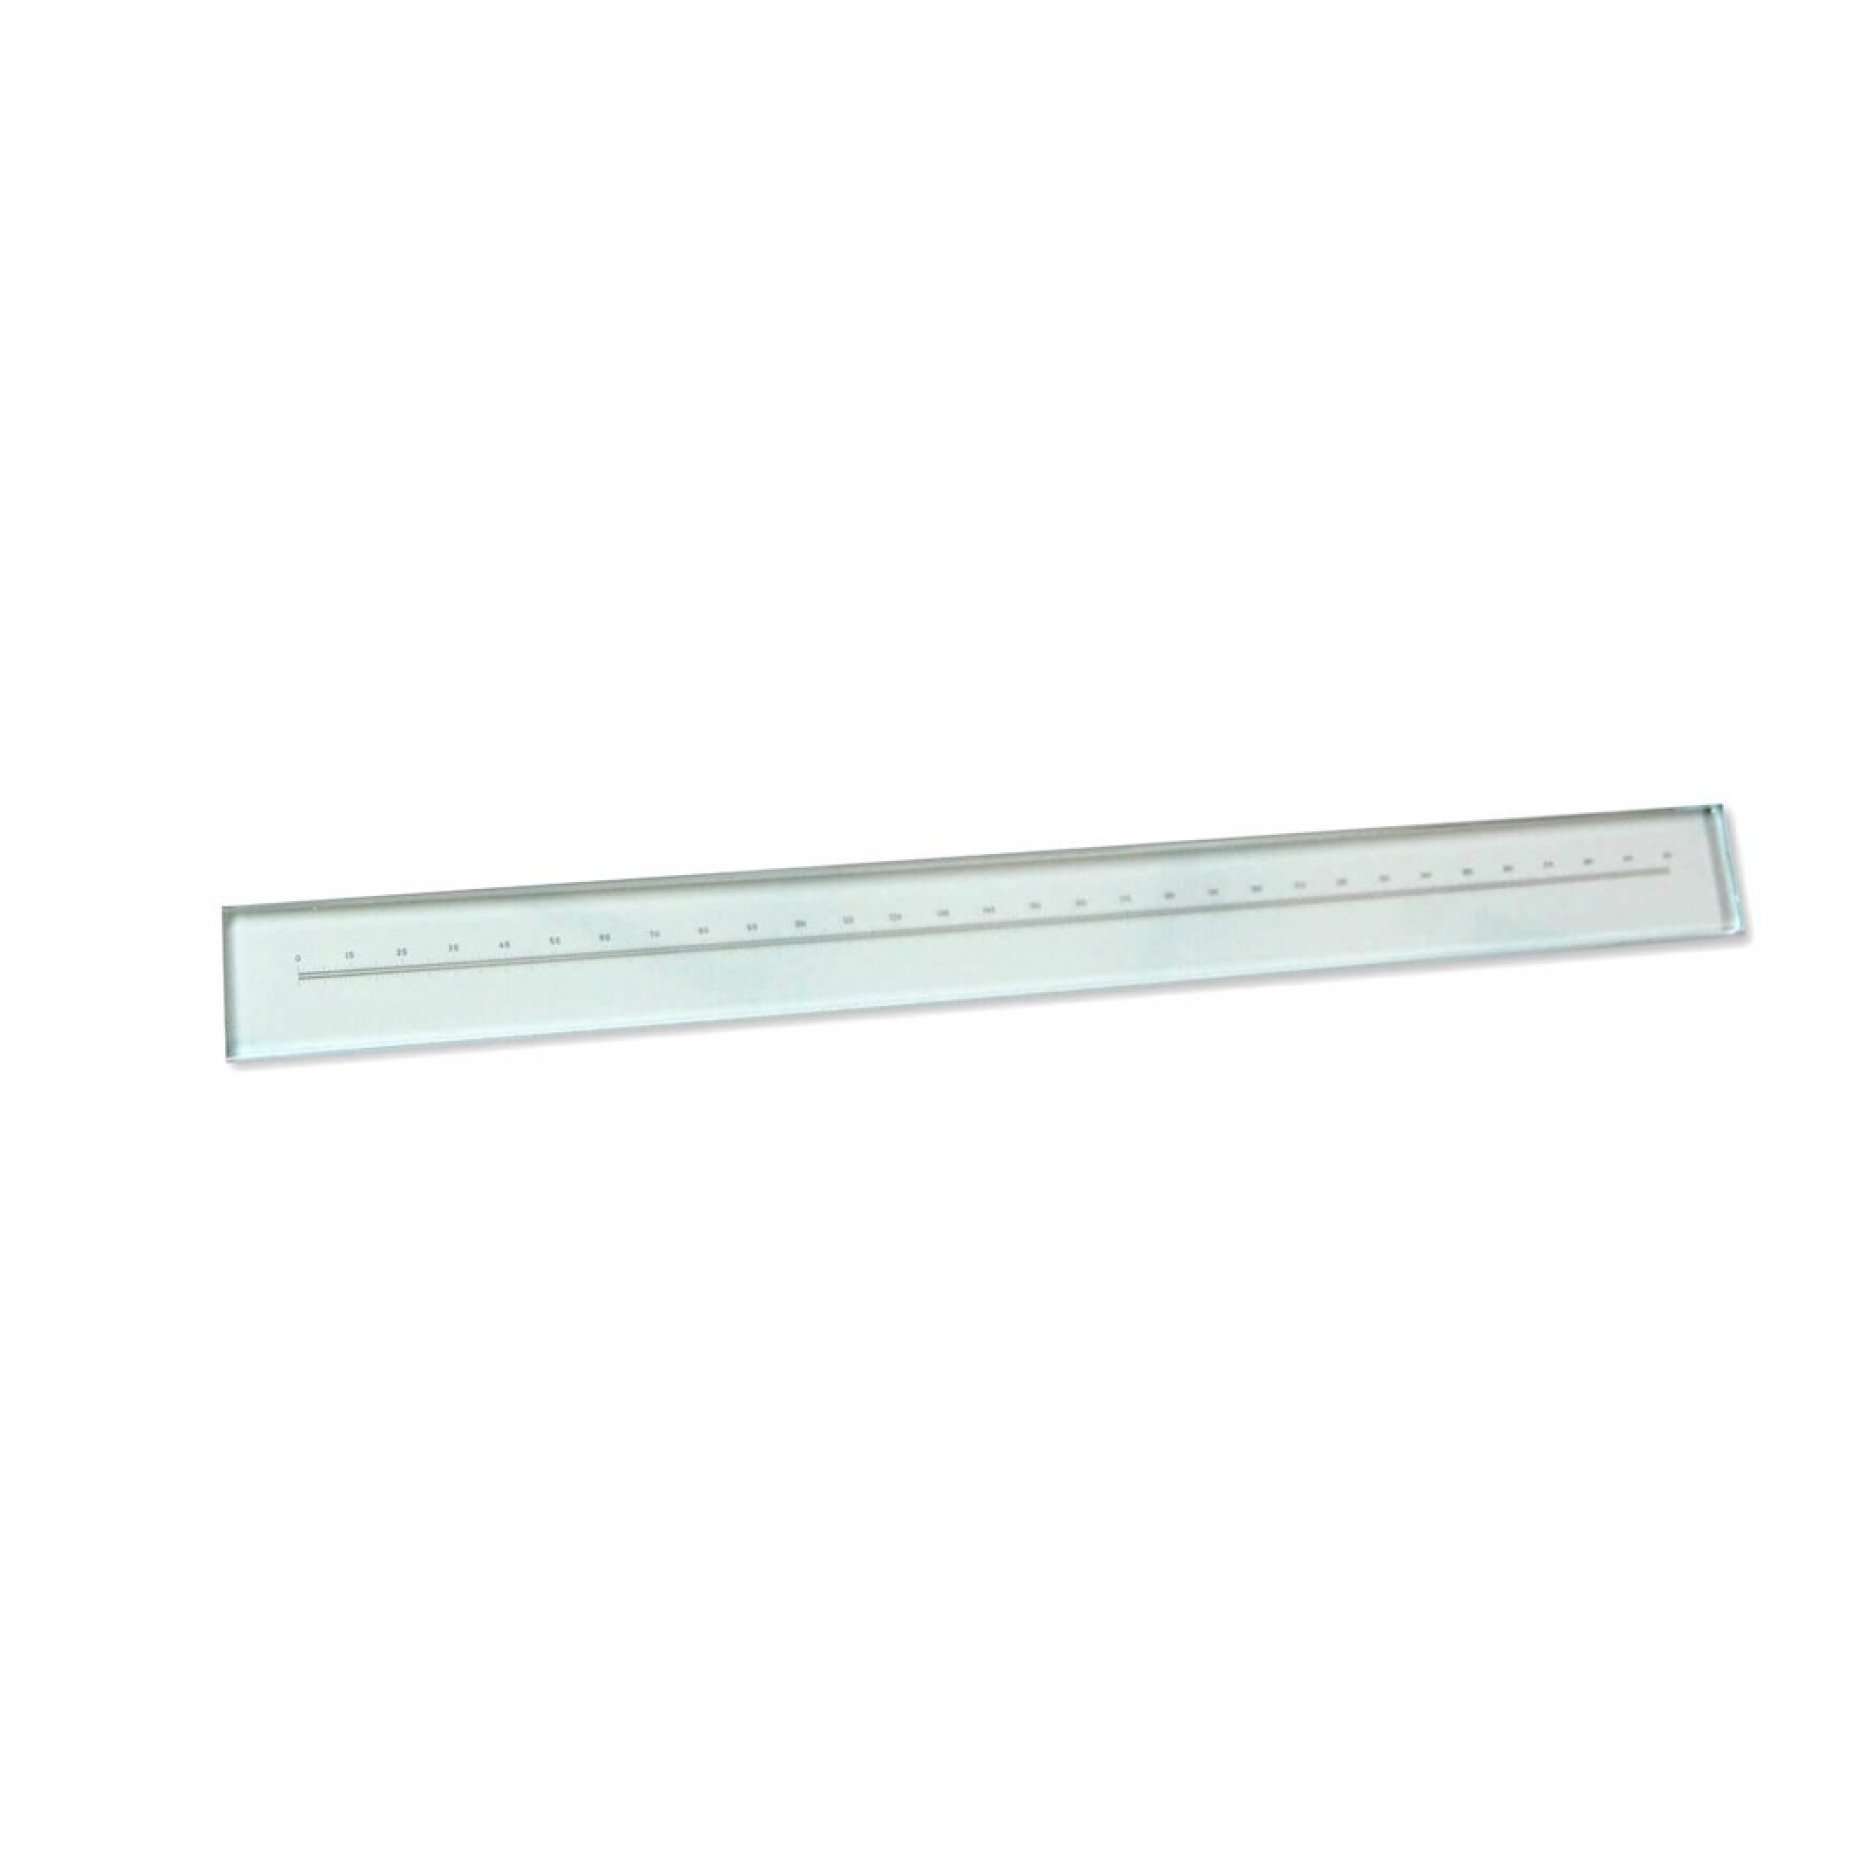 PCA150 Replacement Scale 150mm/0.1mm